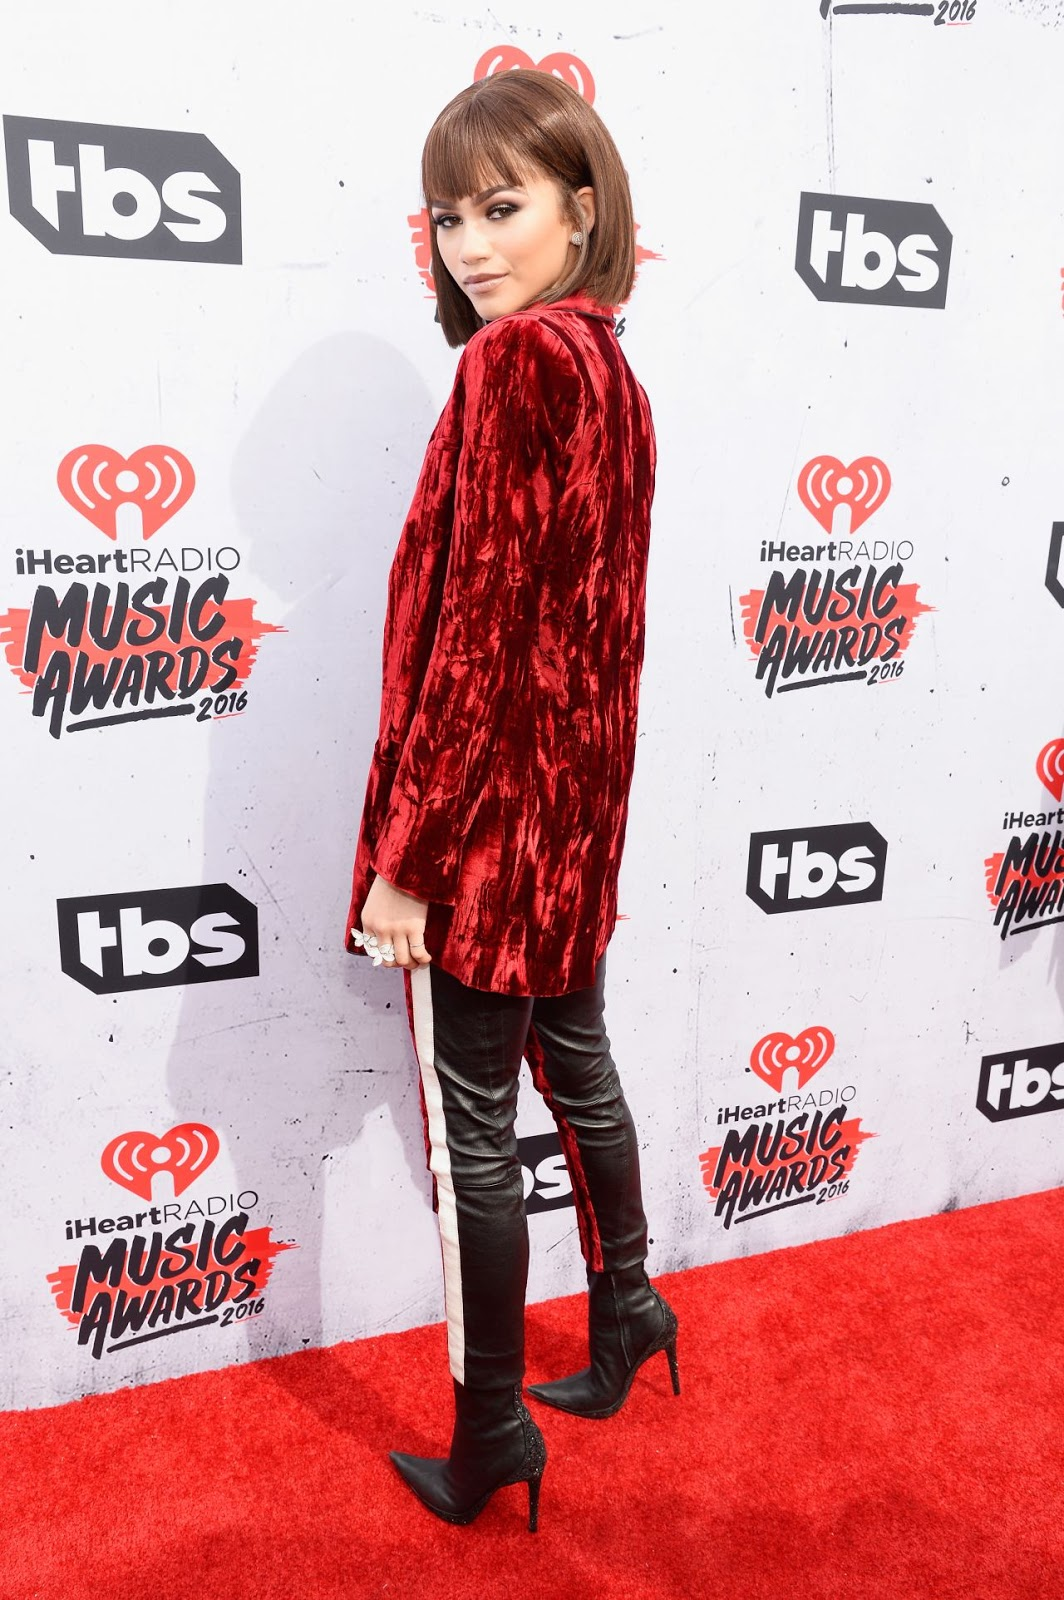 Zendaya shows off abs at the iHeartRadio Music Awards in LA